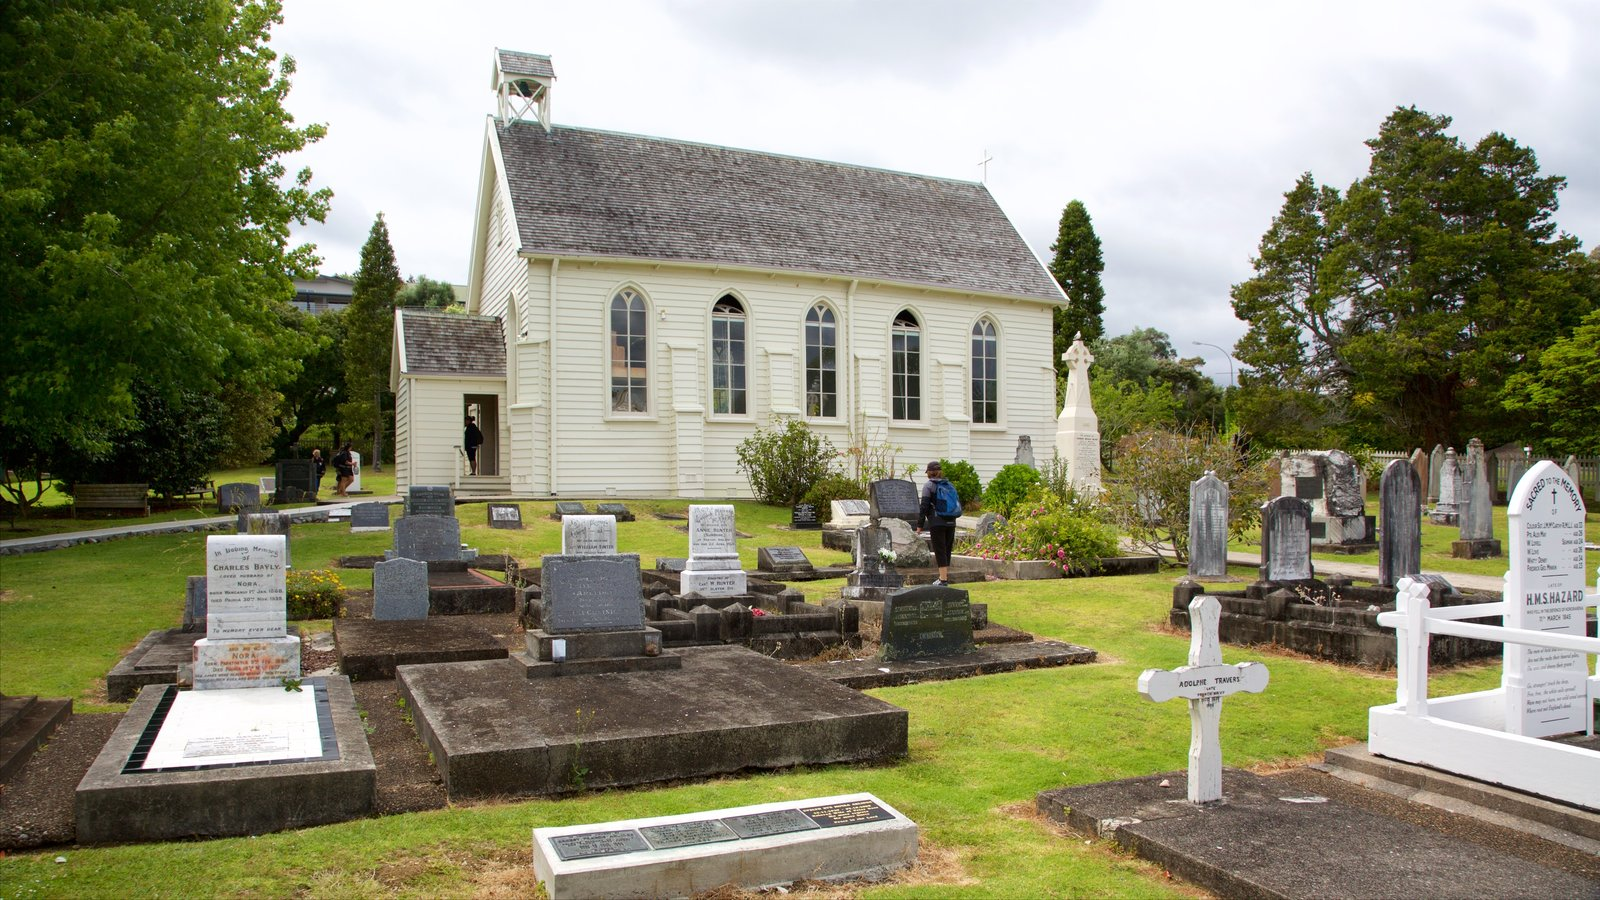 Russell Christ Church which includes a cemetery and a church or cathedral